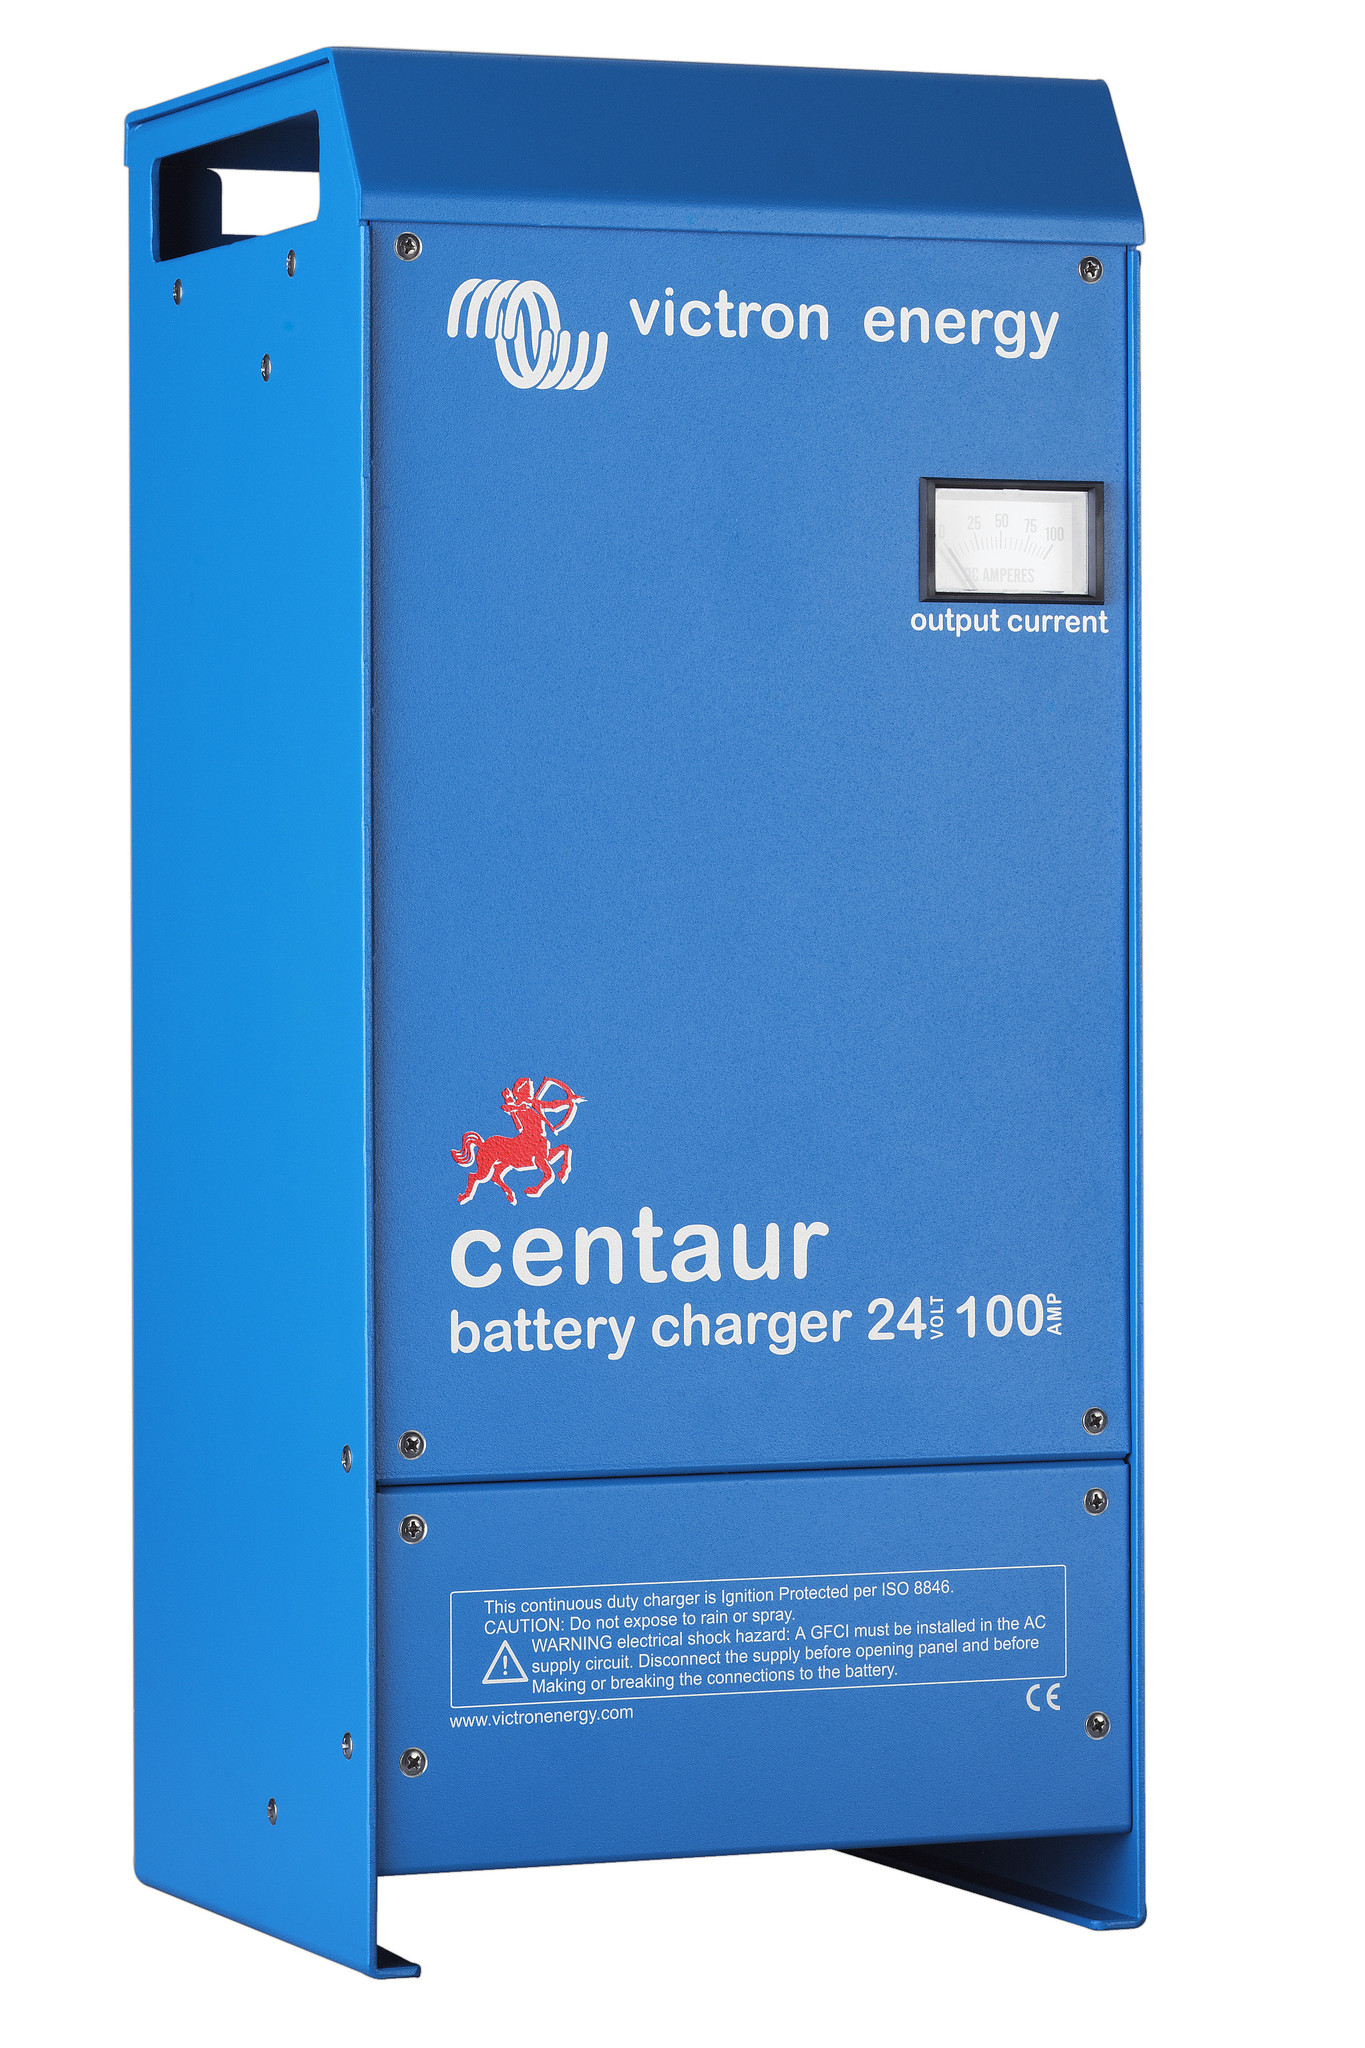 Battery charger analog control